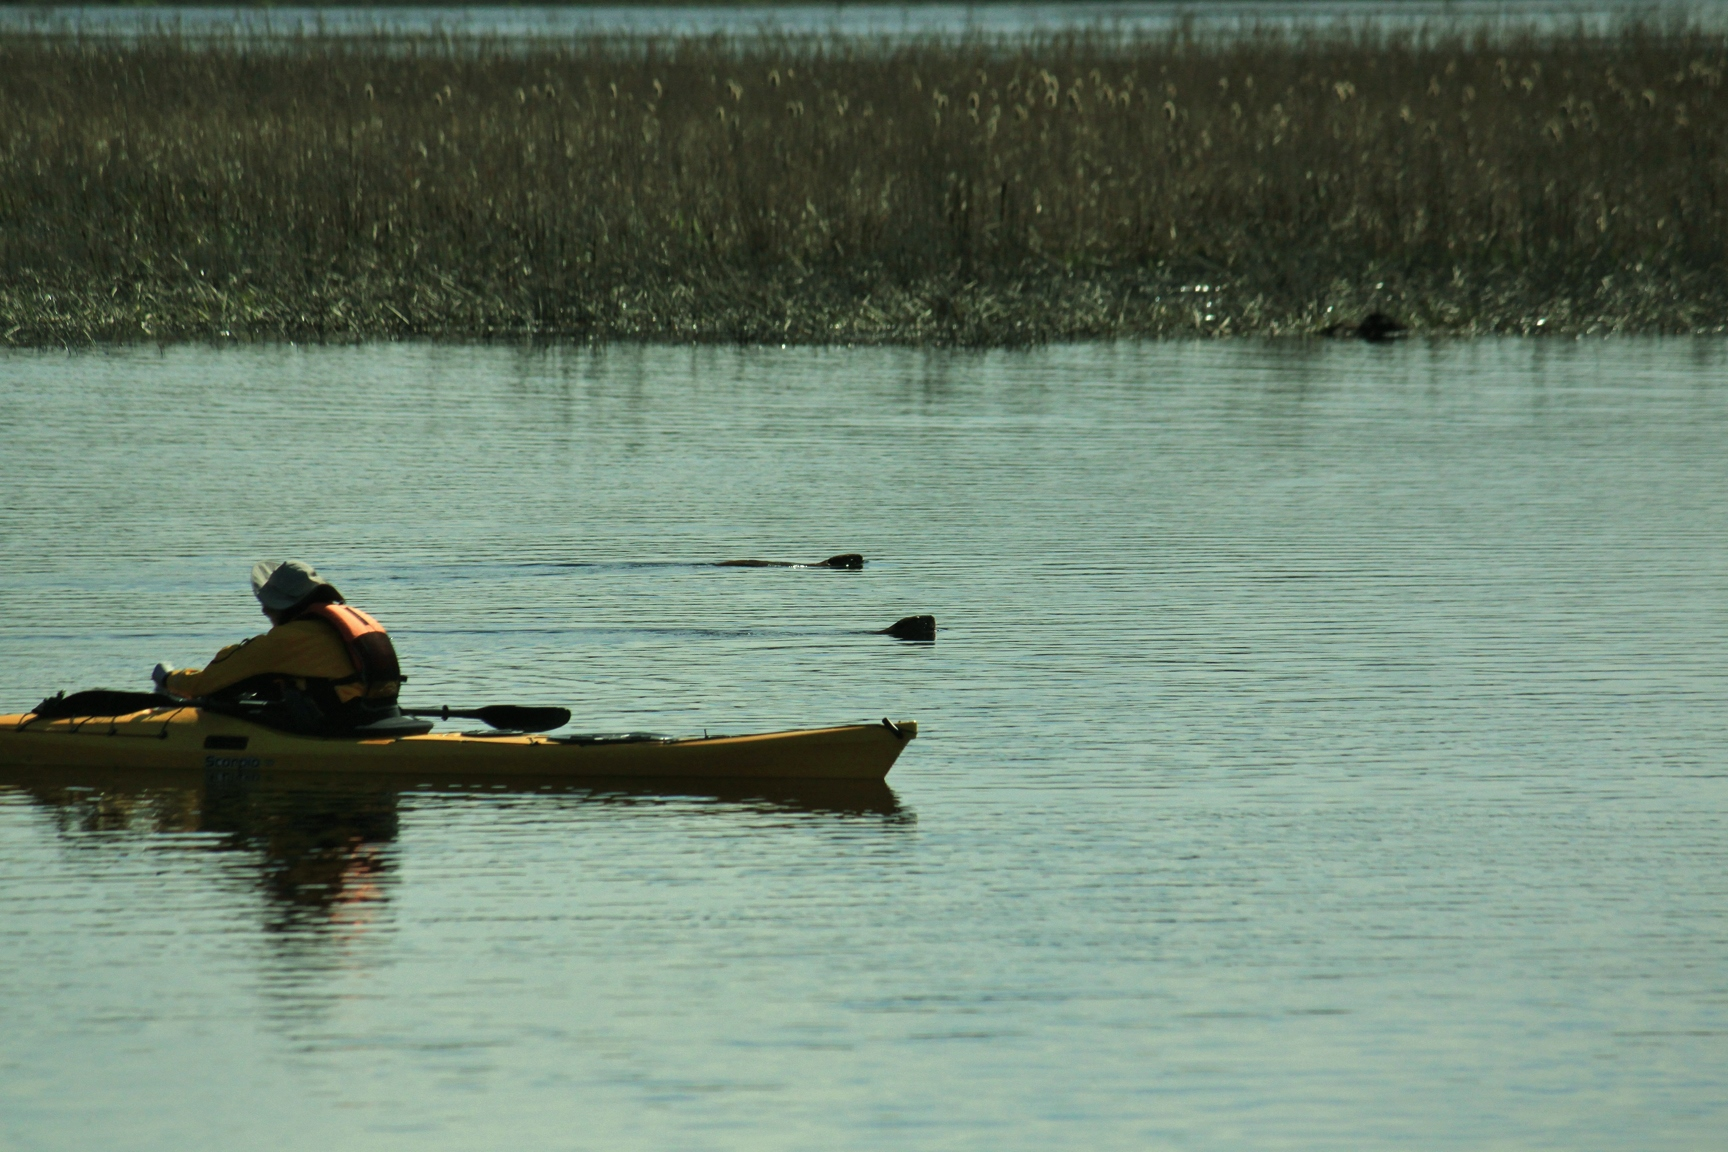 Kayaker with beavers swimming along side by Justin Schmidt 2015